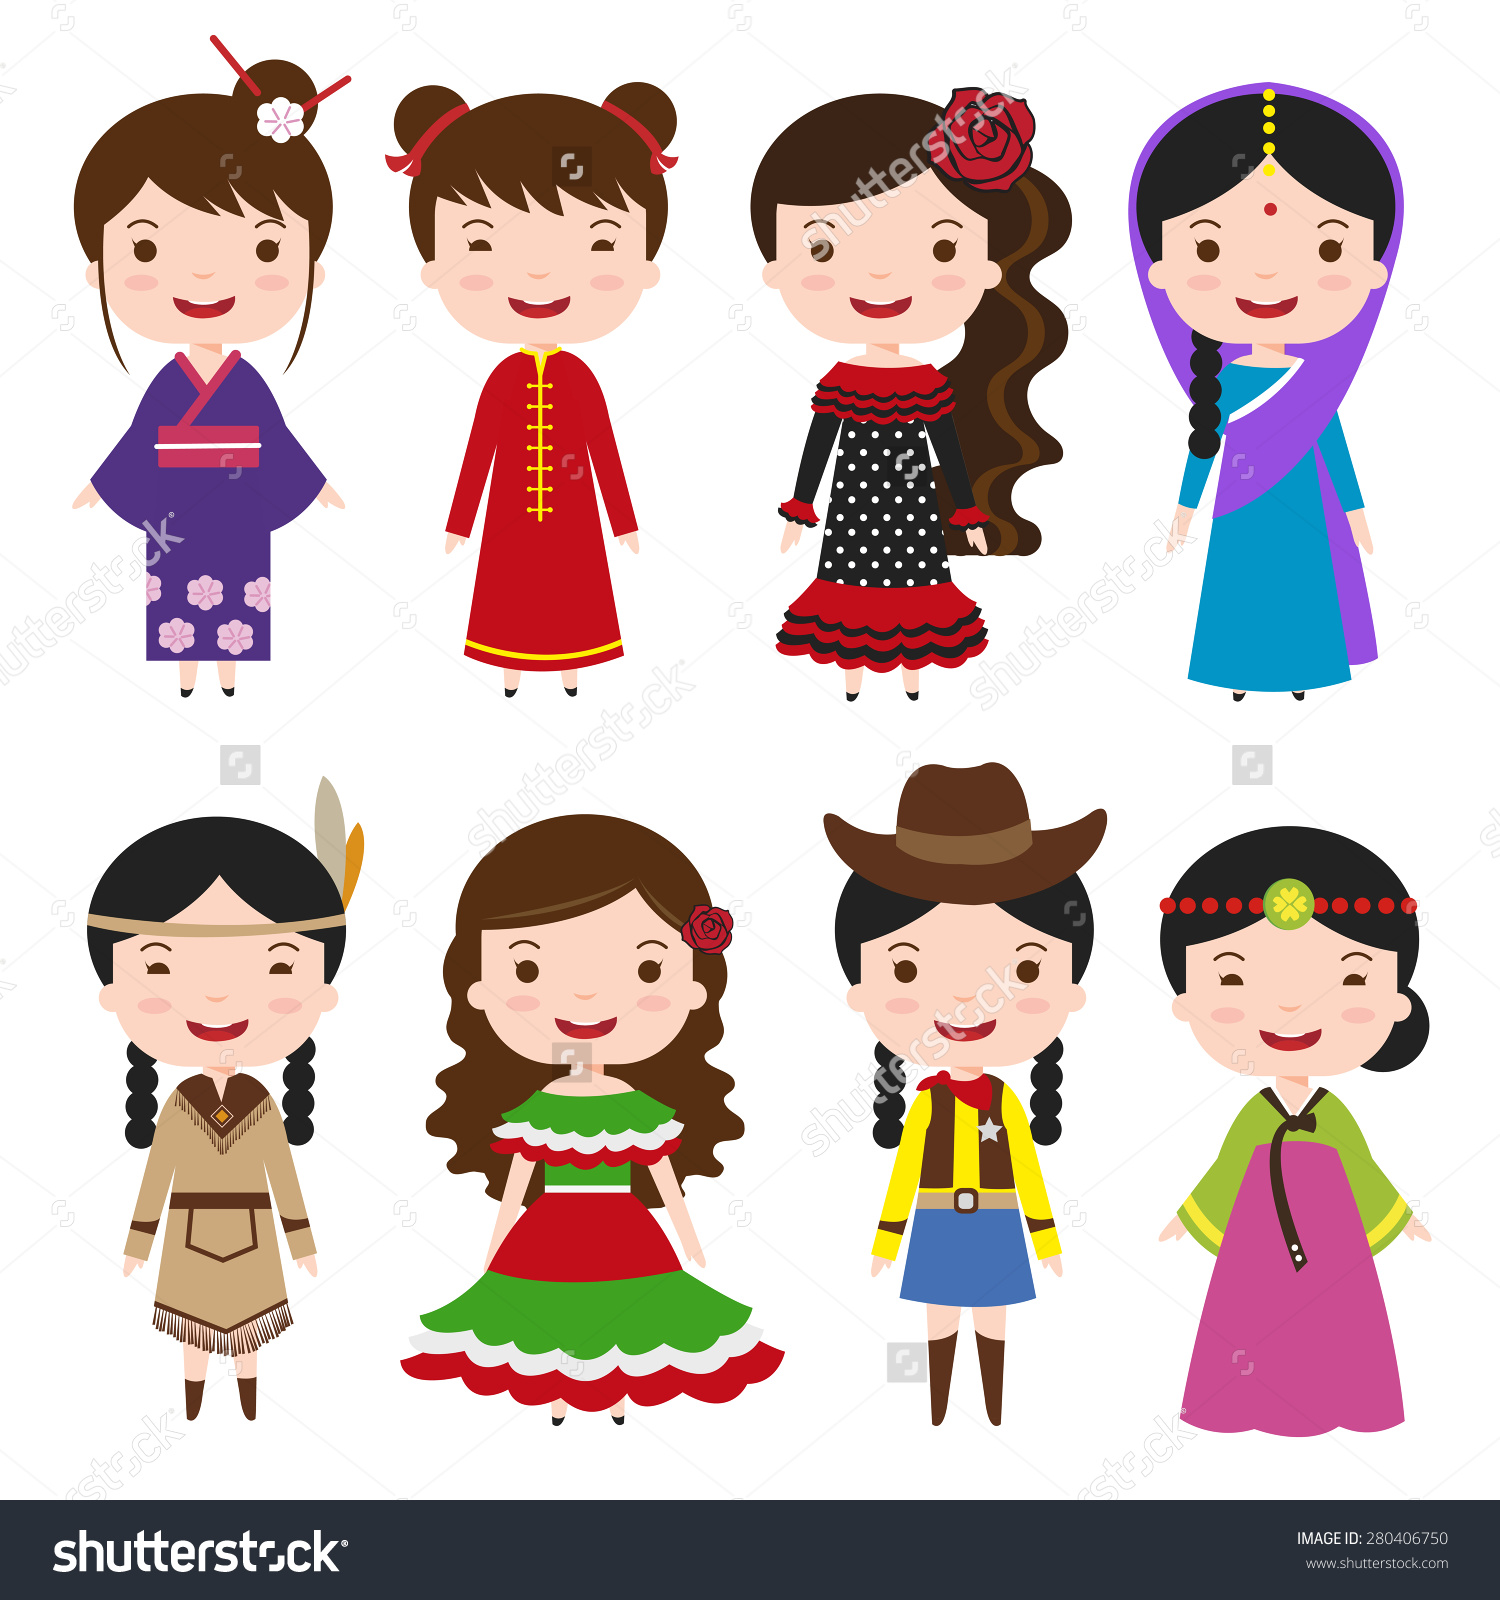 Traditional costumes clipart banner free stock Traditional costumes clipart - ClipartFest banner free stock